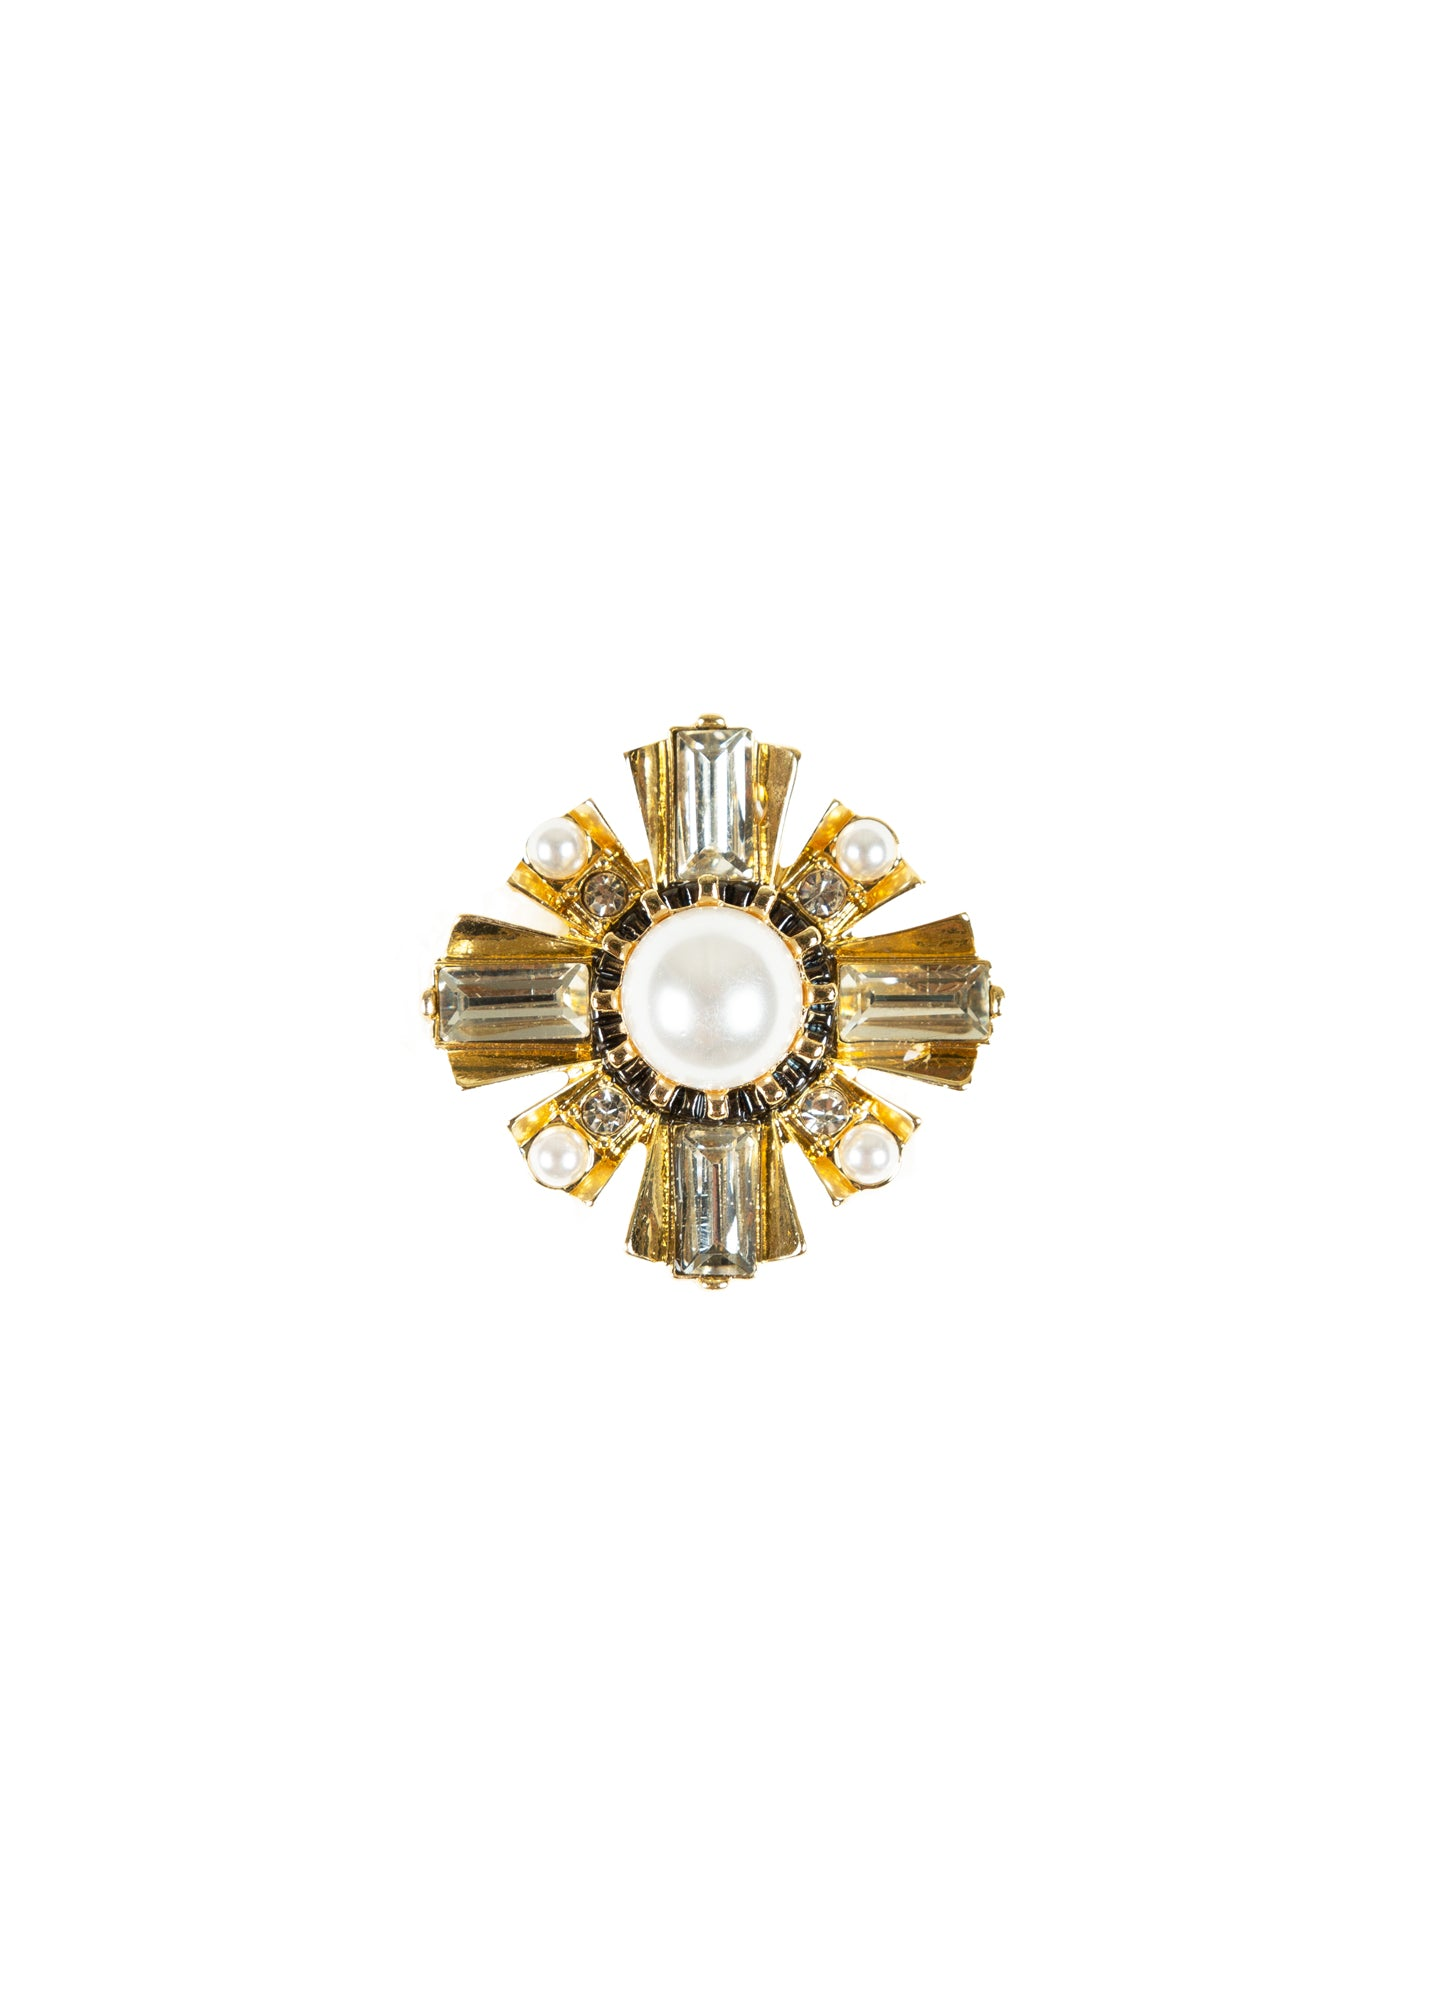 Sunburst Broche